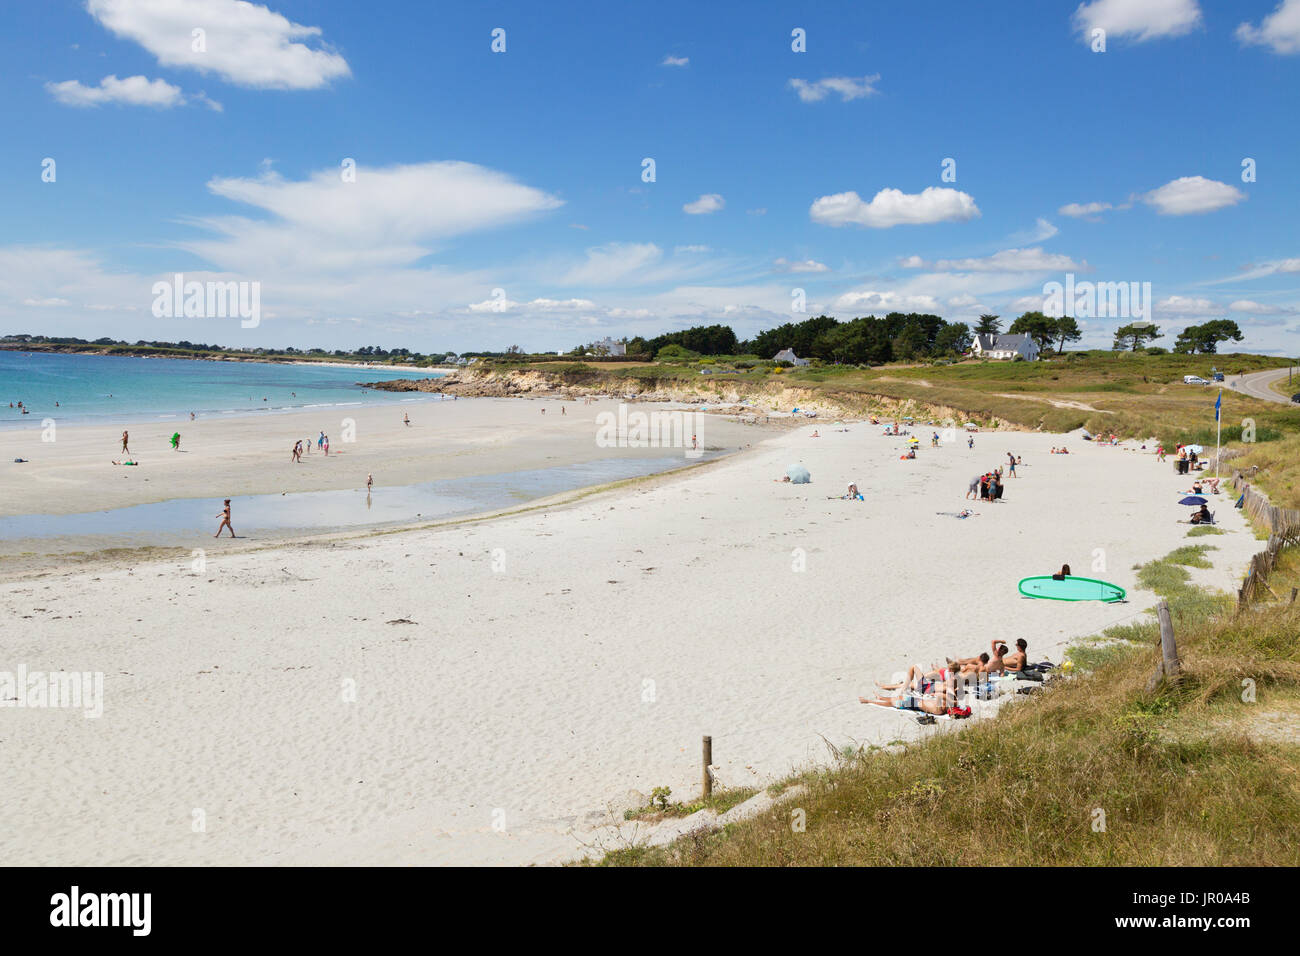 France beach - Raguenez beach, Finistere, Brittany, northern France, Europe - Stock Image